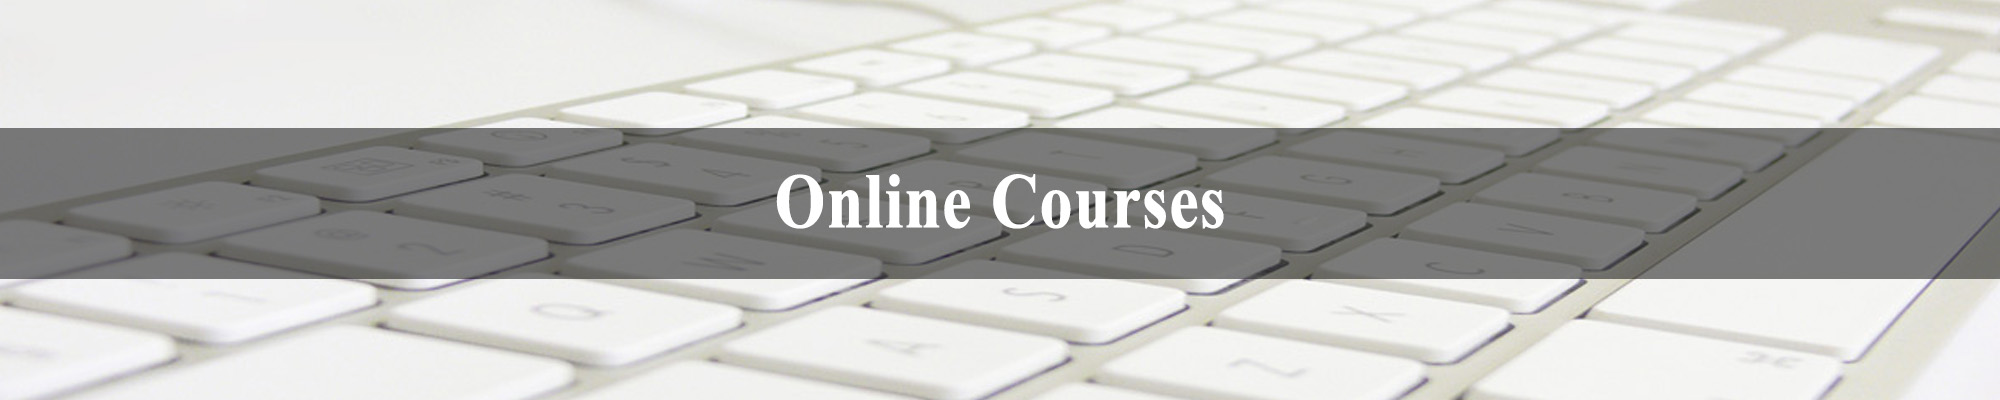 courses_banner